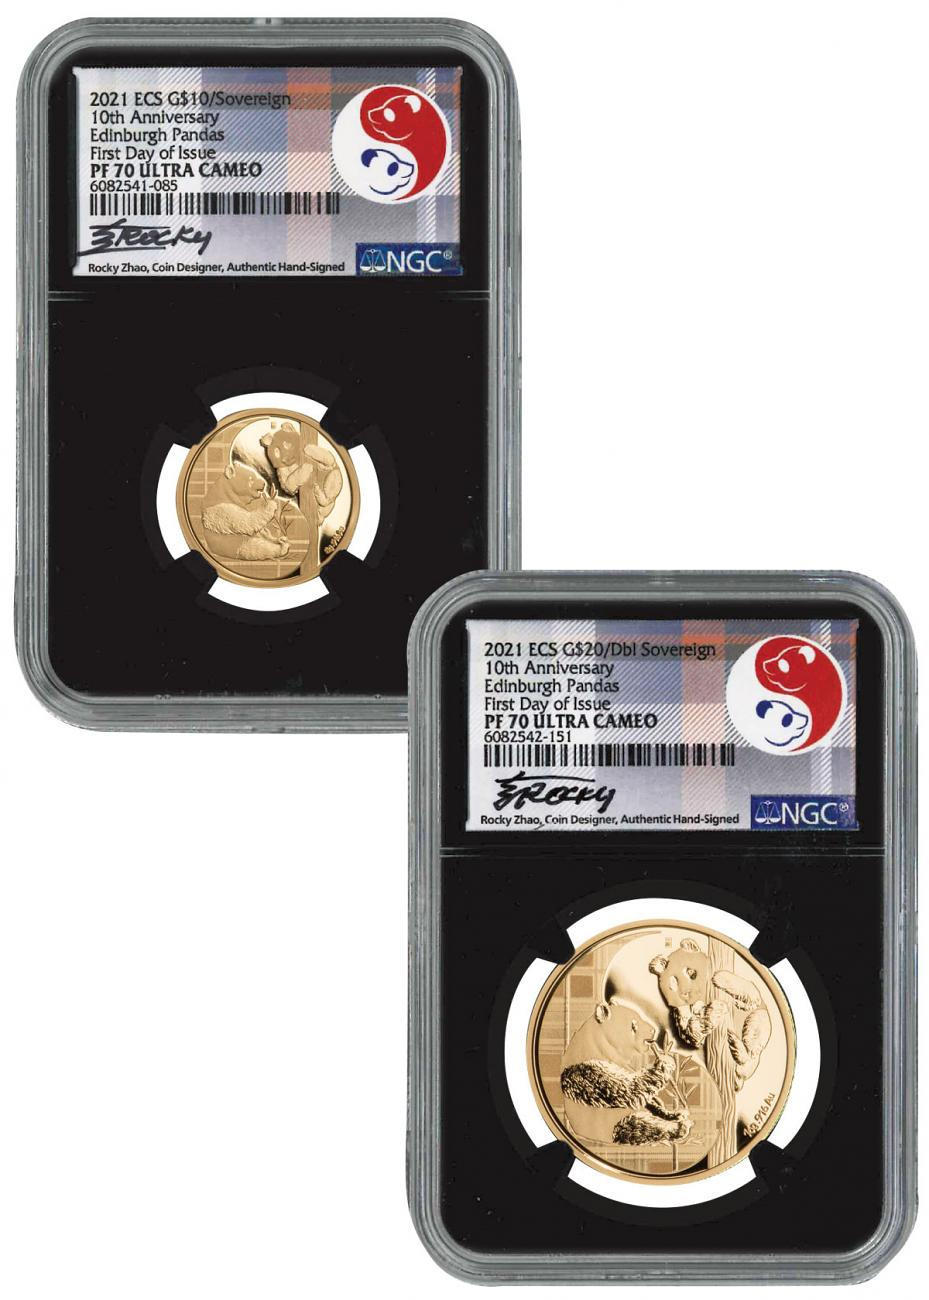 2-Piece Set - 2021 Sovereign/Dbl Sovereign Set Scarce and Unique Coin Division NGC PF70 UC FDI